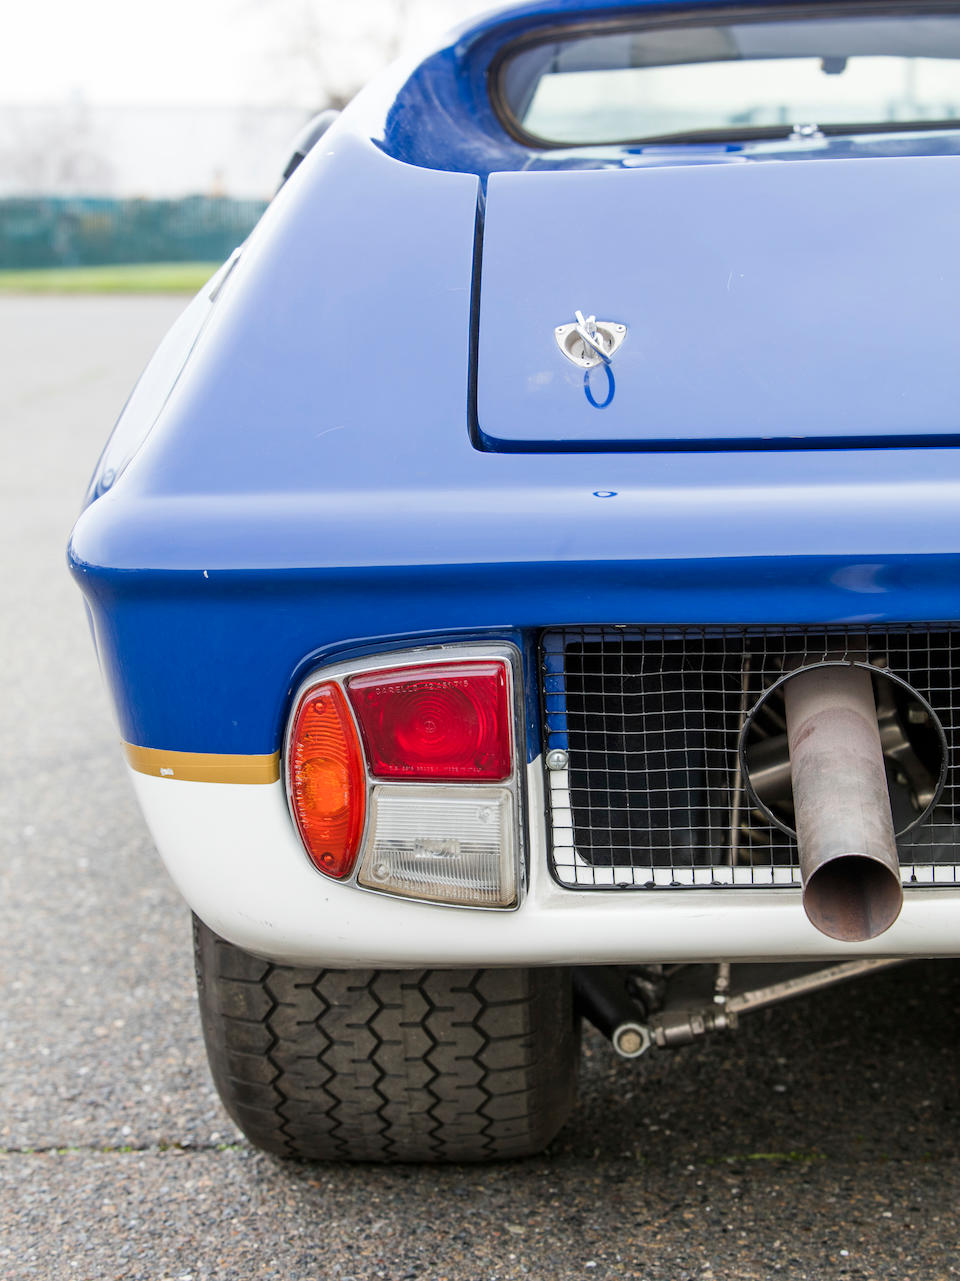 <b>1967 Lotus 47 GT-015 Group 4 Competition Coupe</b><br />Chassis no. 47 GT 015<br />Engine no. 47 R 9